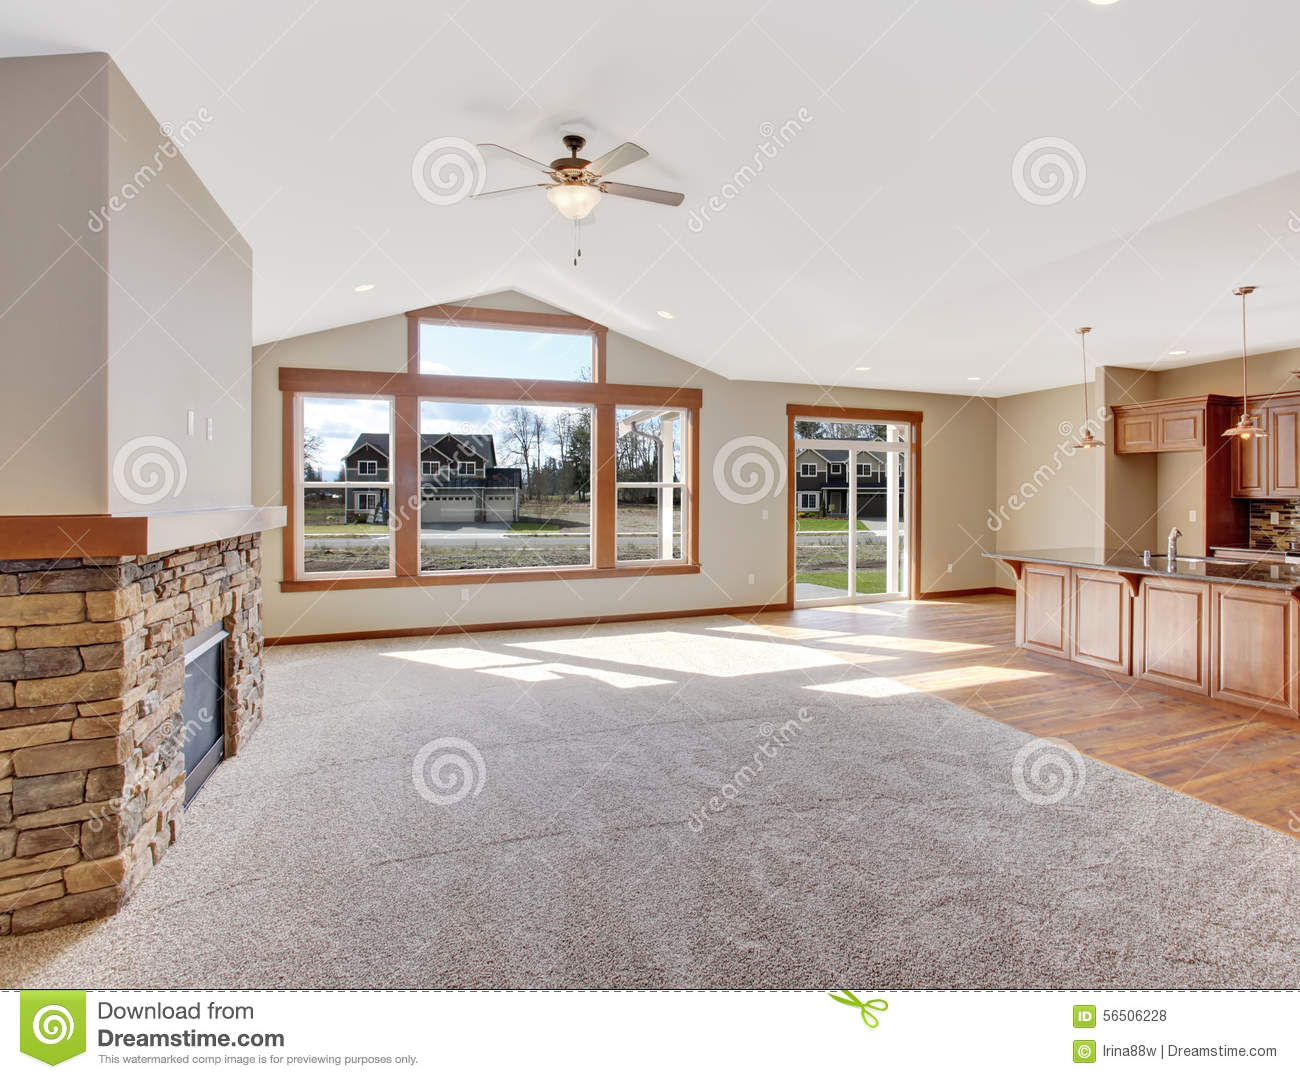 Nice unfurnished living room with carpet stock photo image 56506228